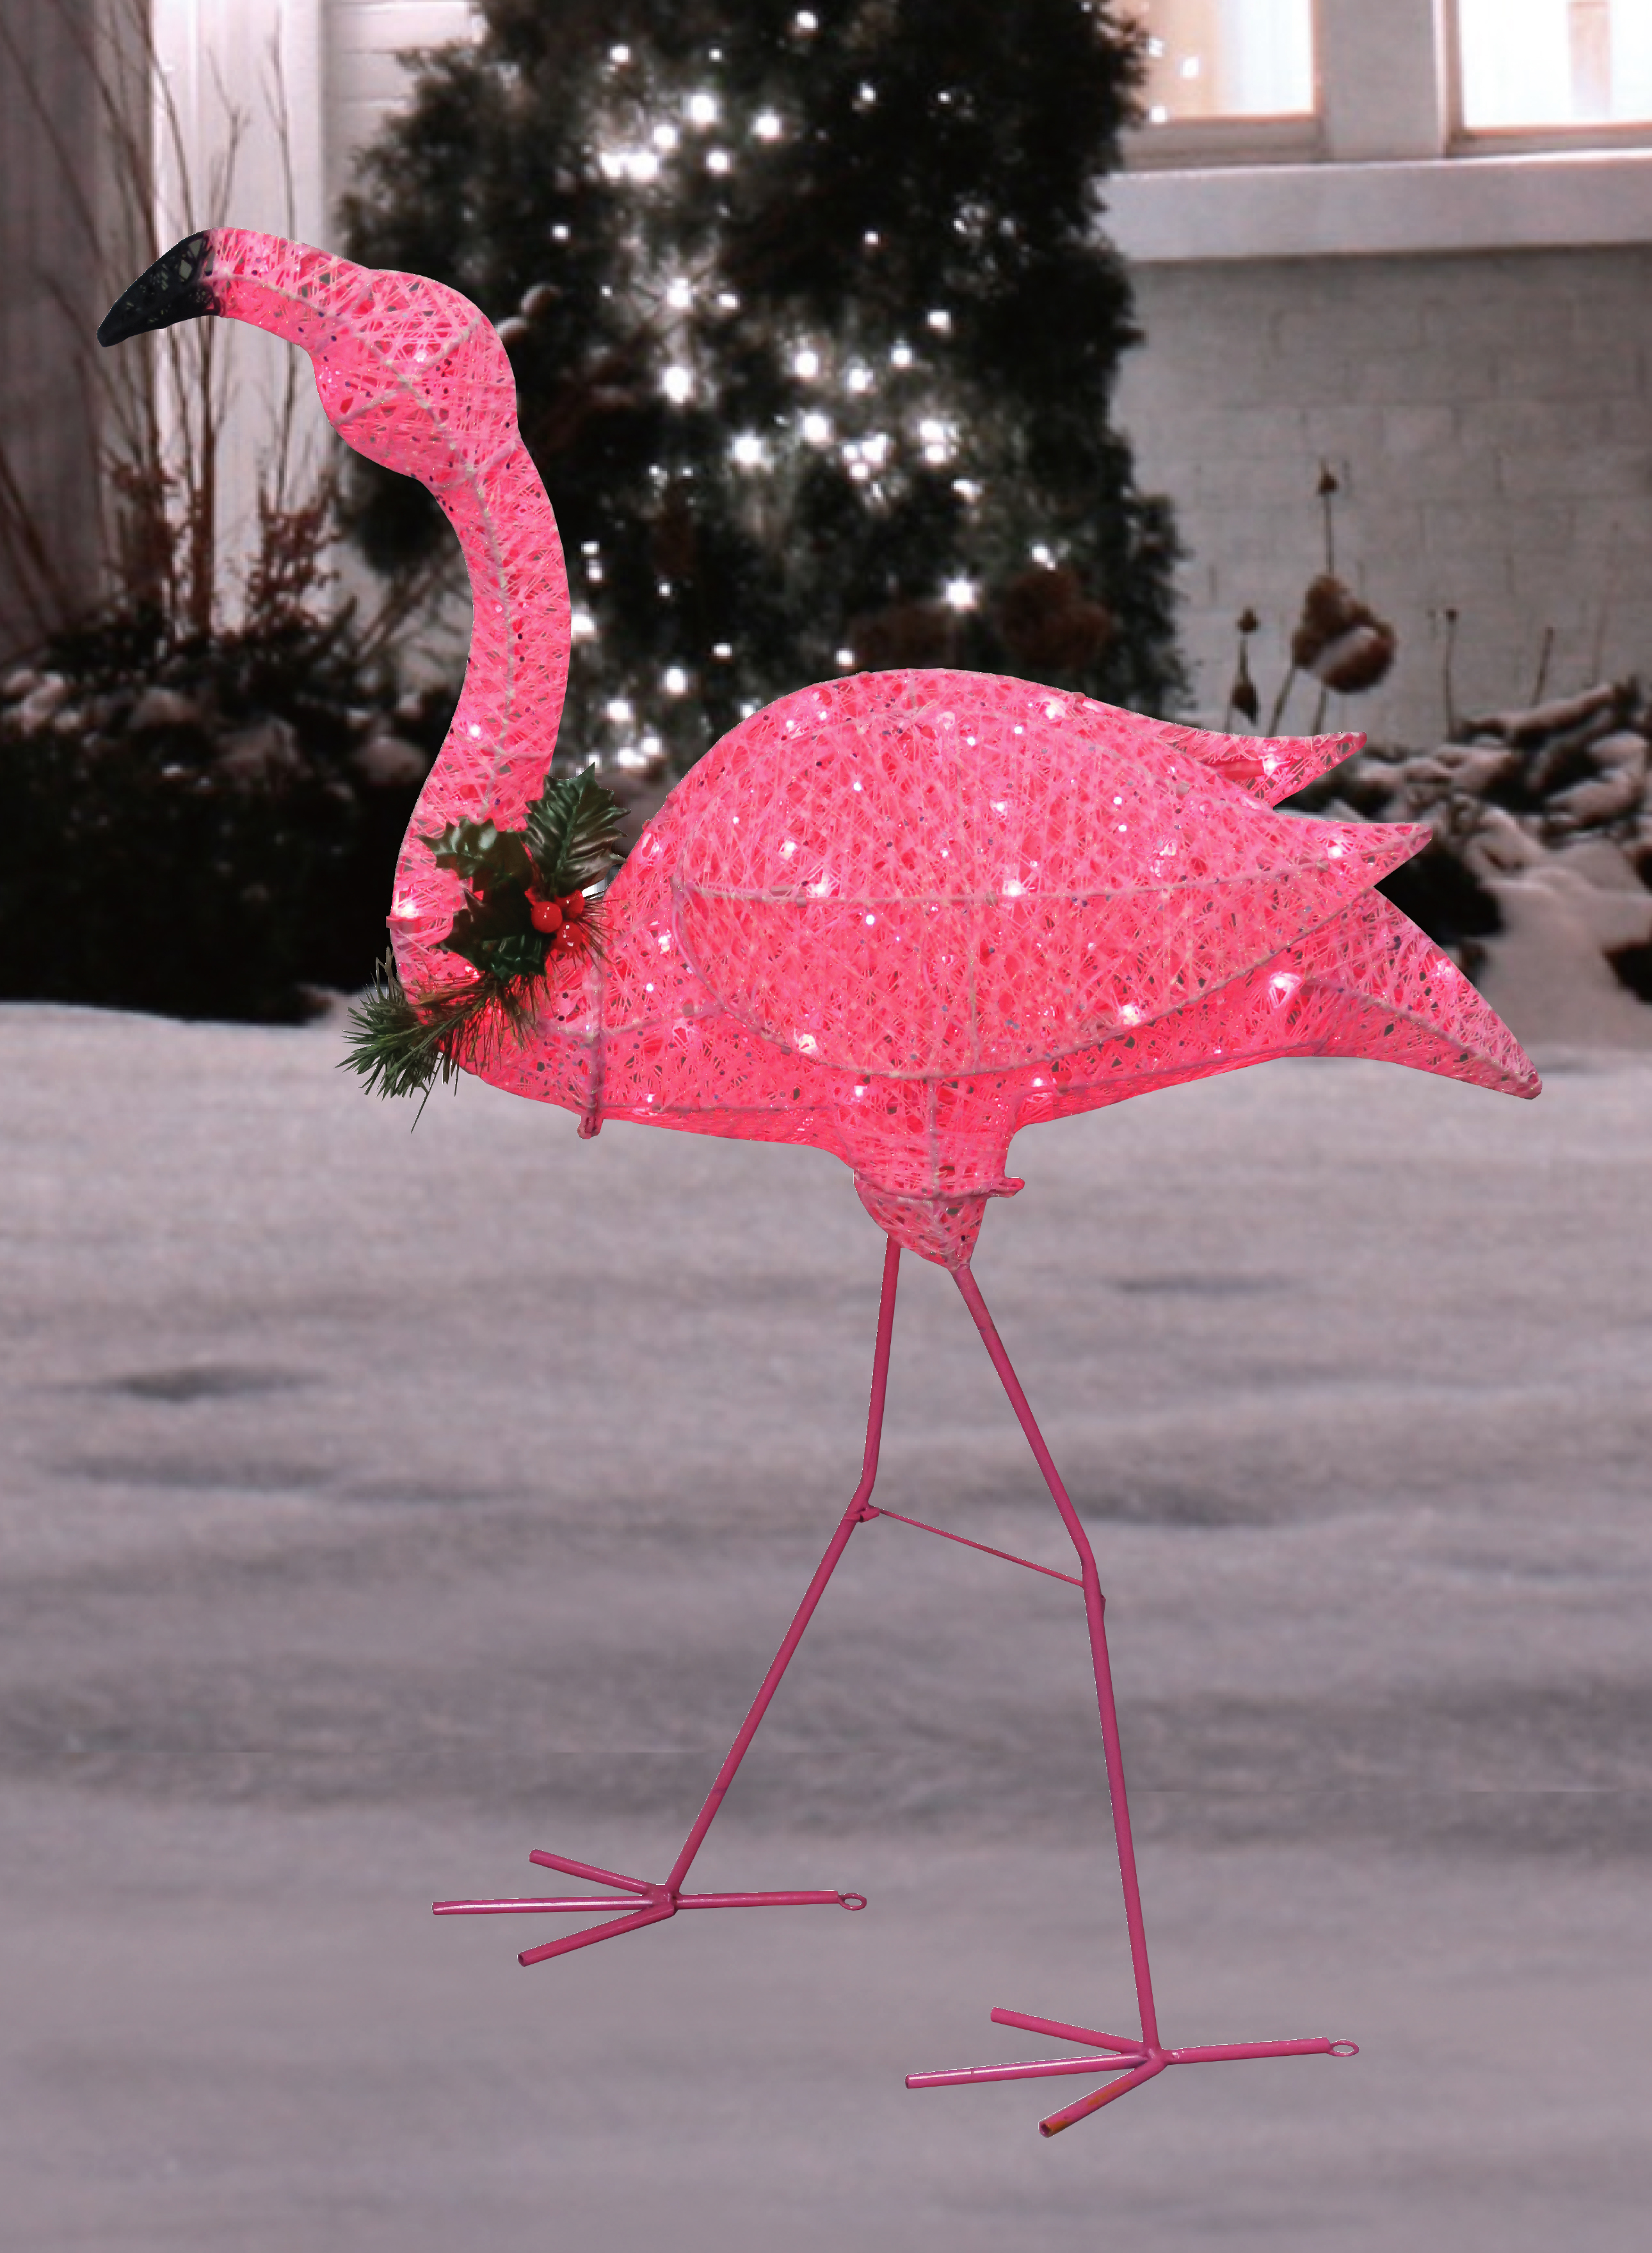 3 Glittery Pink Flamingo With Holly And Berry Outdoor Yard Decoration